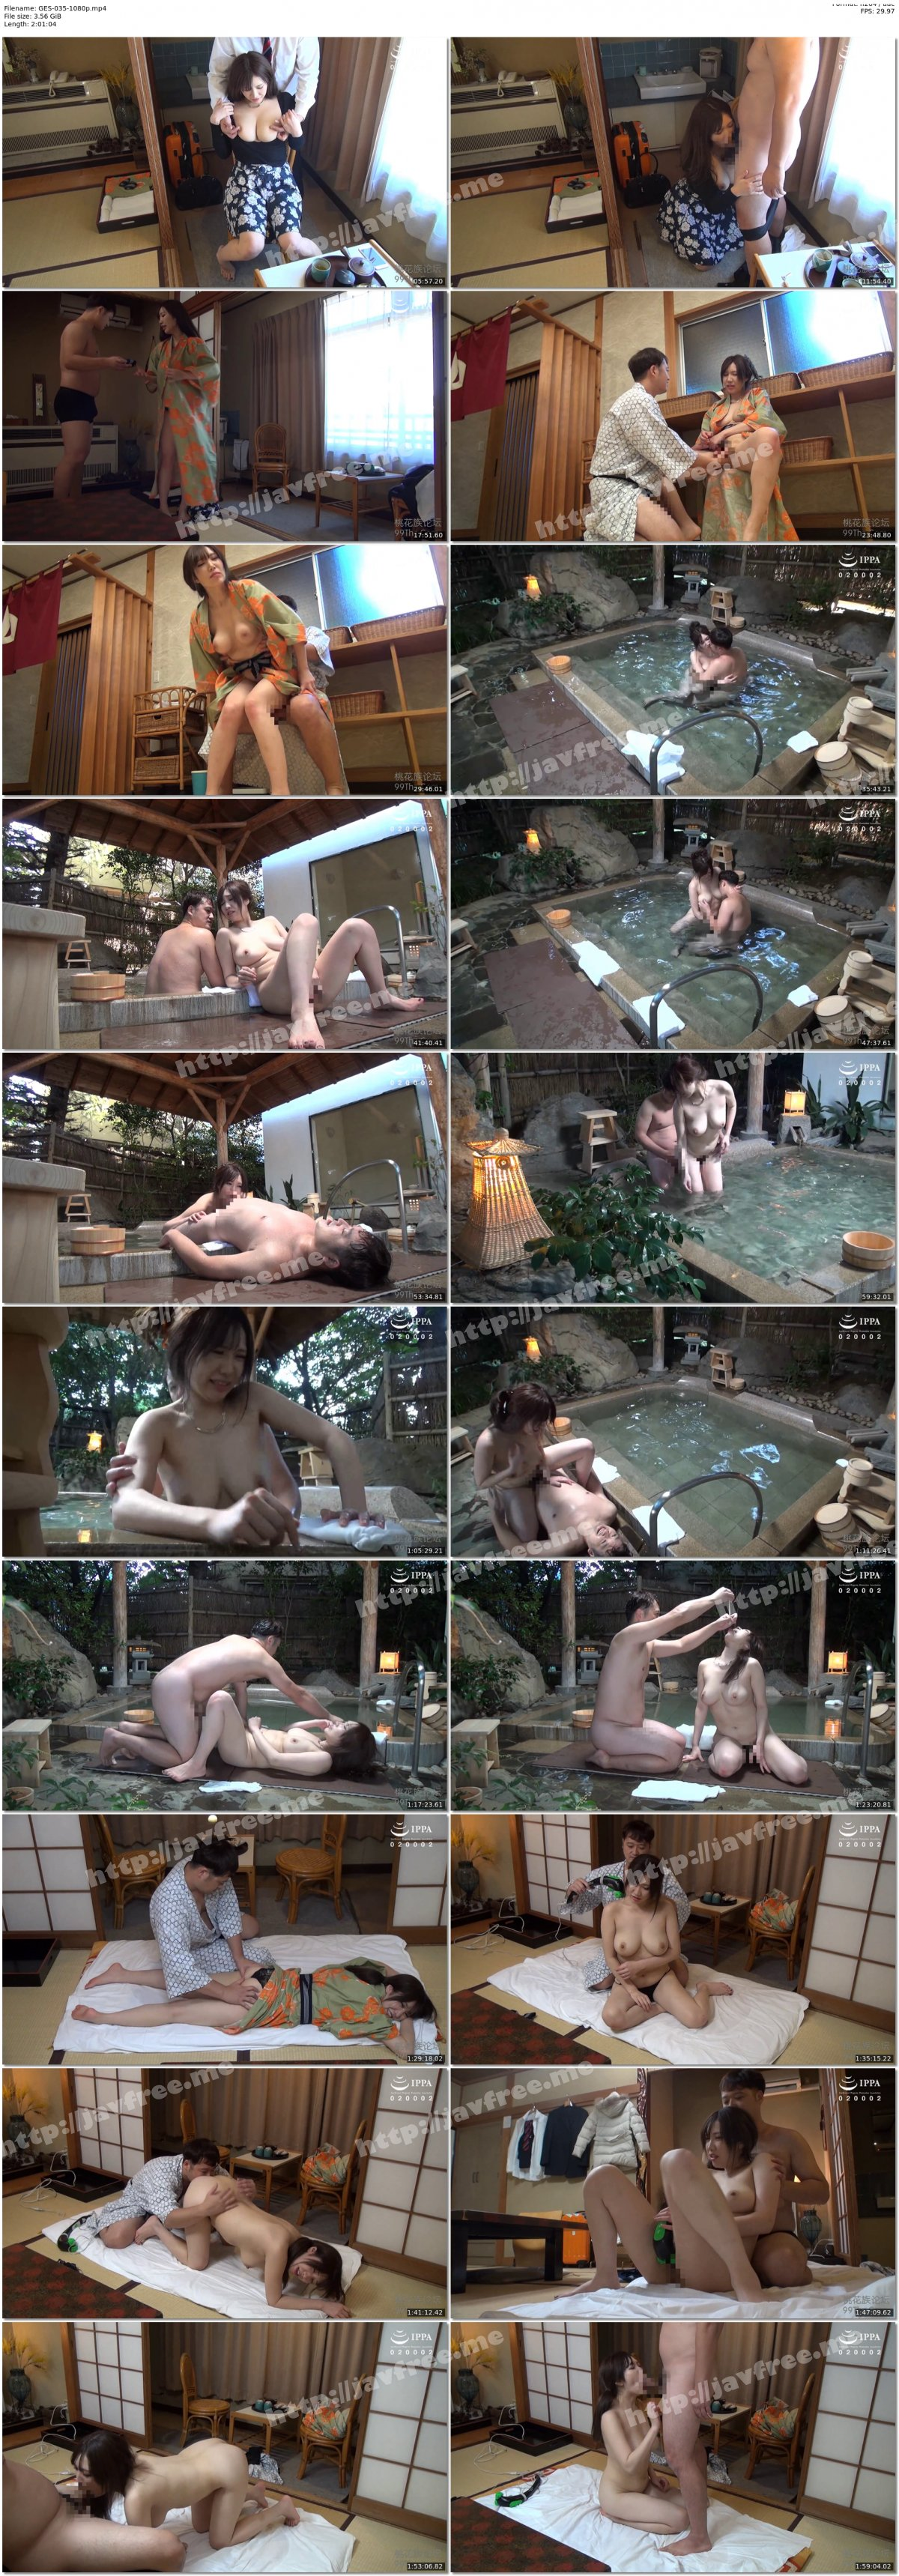 [HD][GES-035] ゲスの極み温泉 貸切湯17組目 - image GES-035-1080p on https://javfree.me